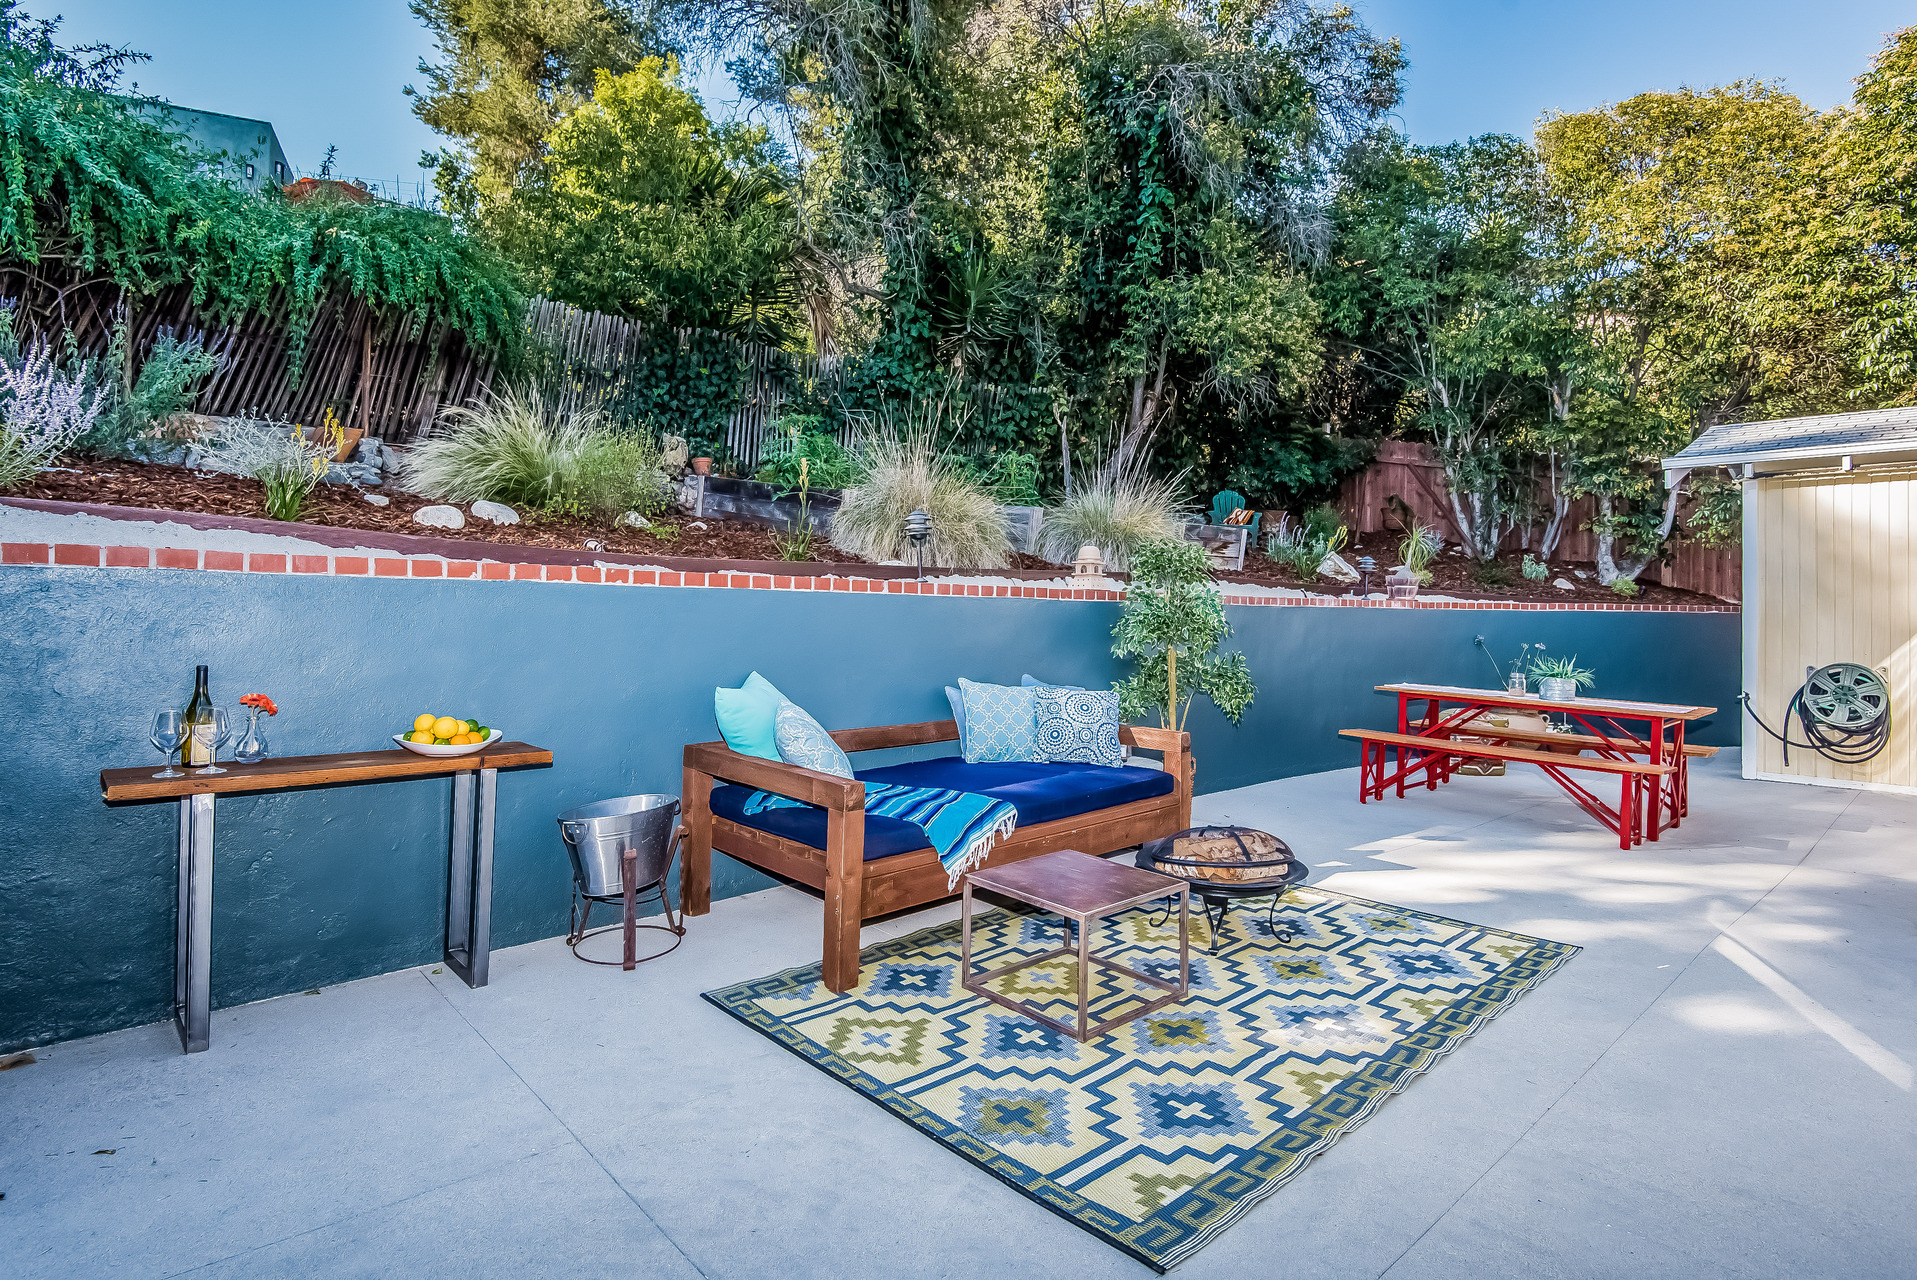 031-Backyard_concrete__Patio-2907676-medium.jpg